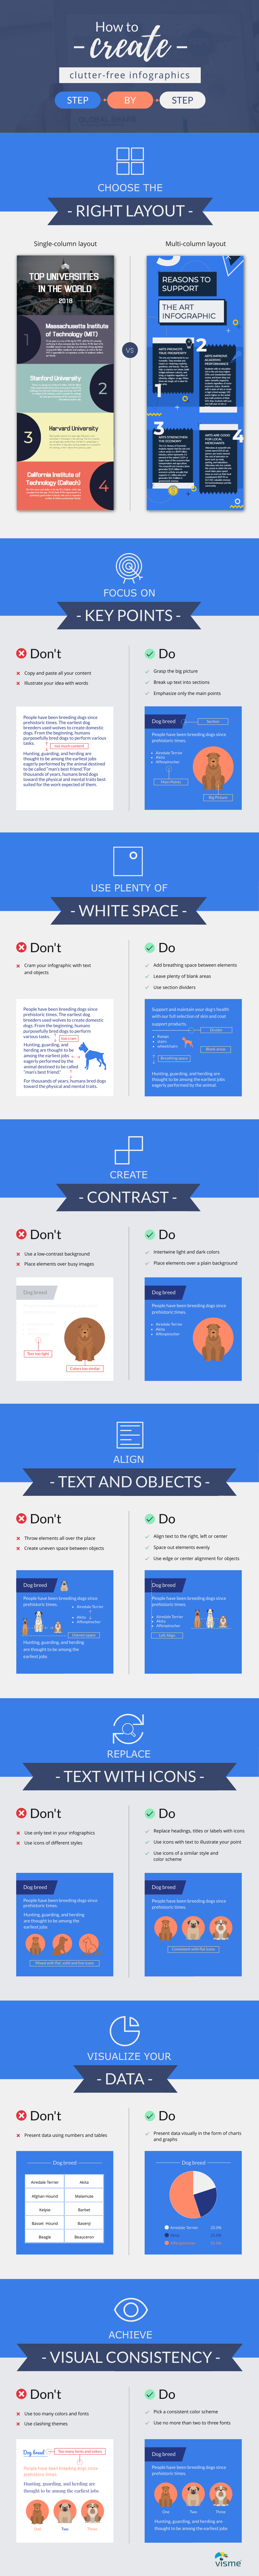 how to create clutter free infographics - full infographic